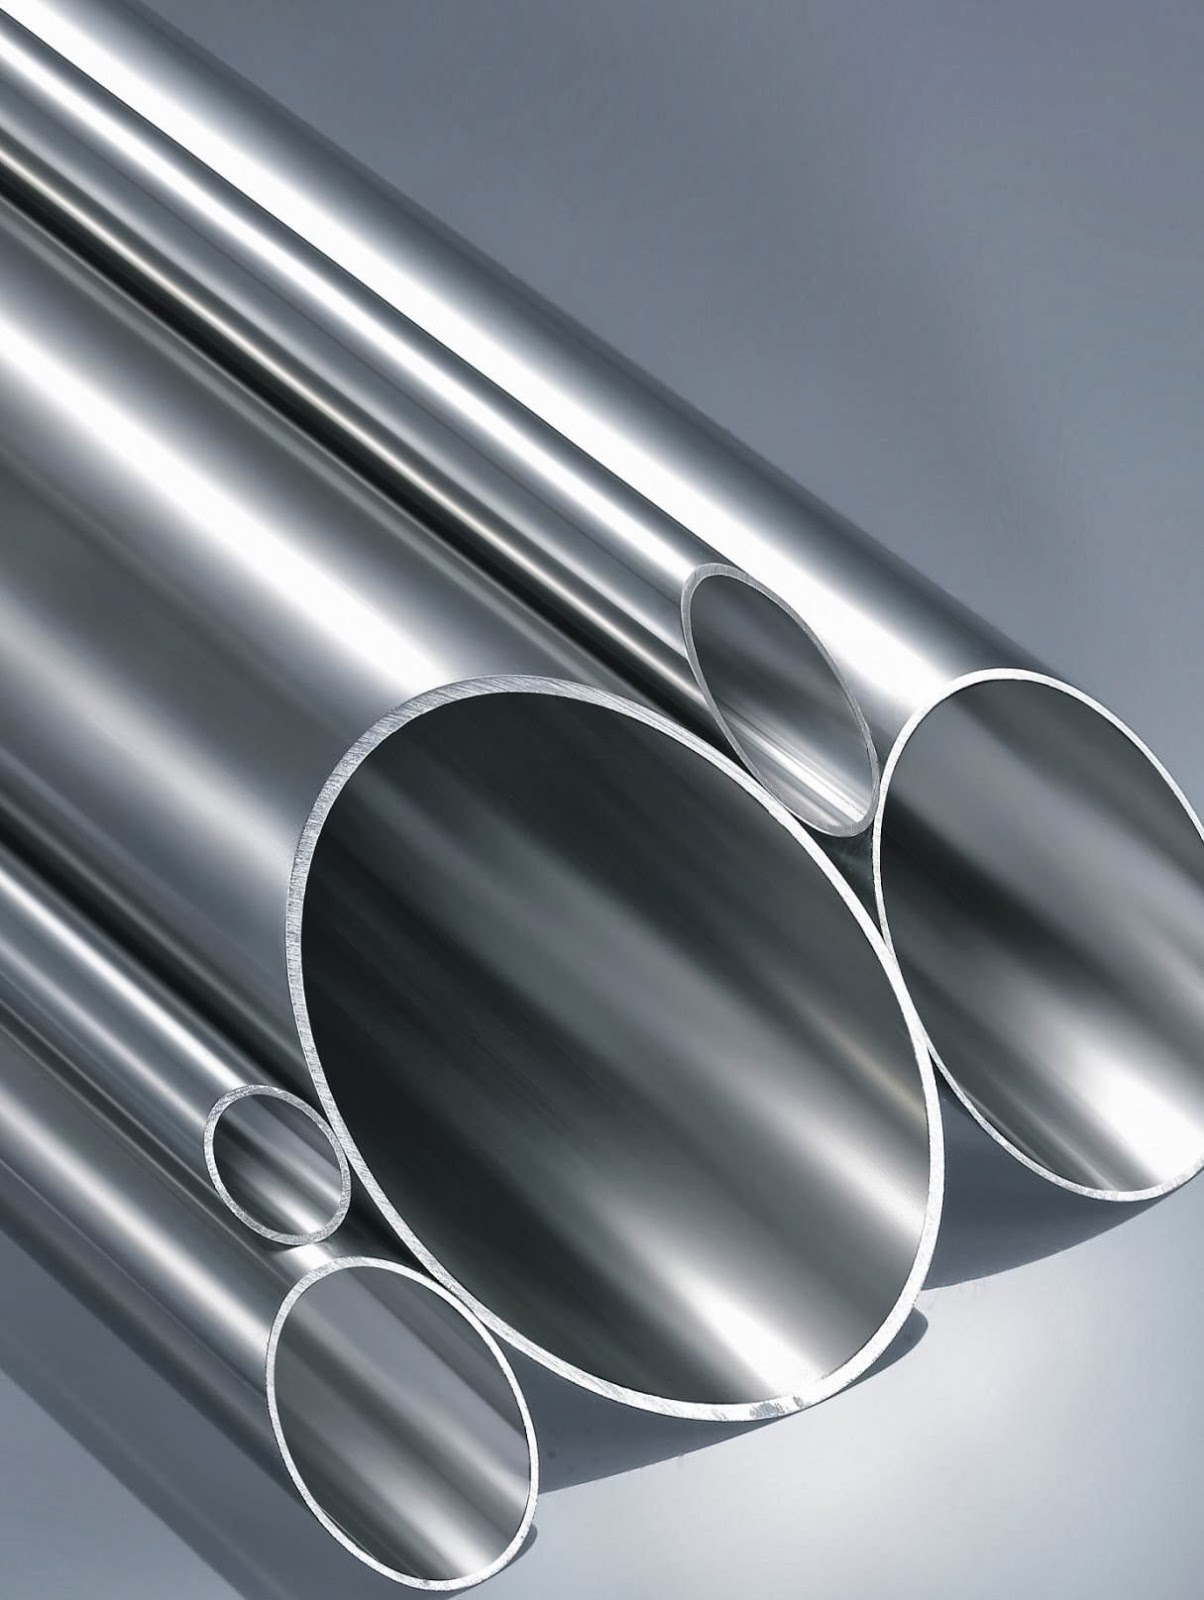 Stainless Steel Pipes : Magnetic stainless steel austenitic ferritic martensitic